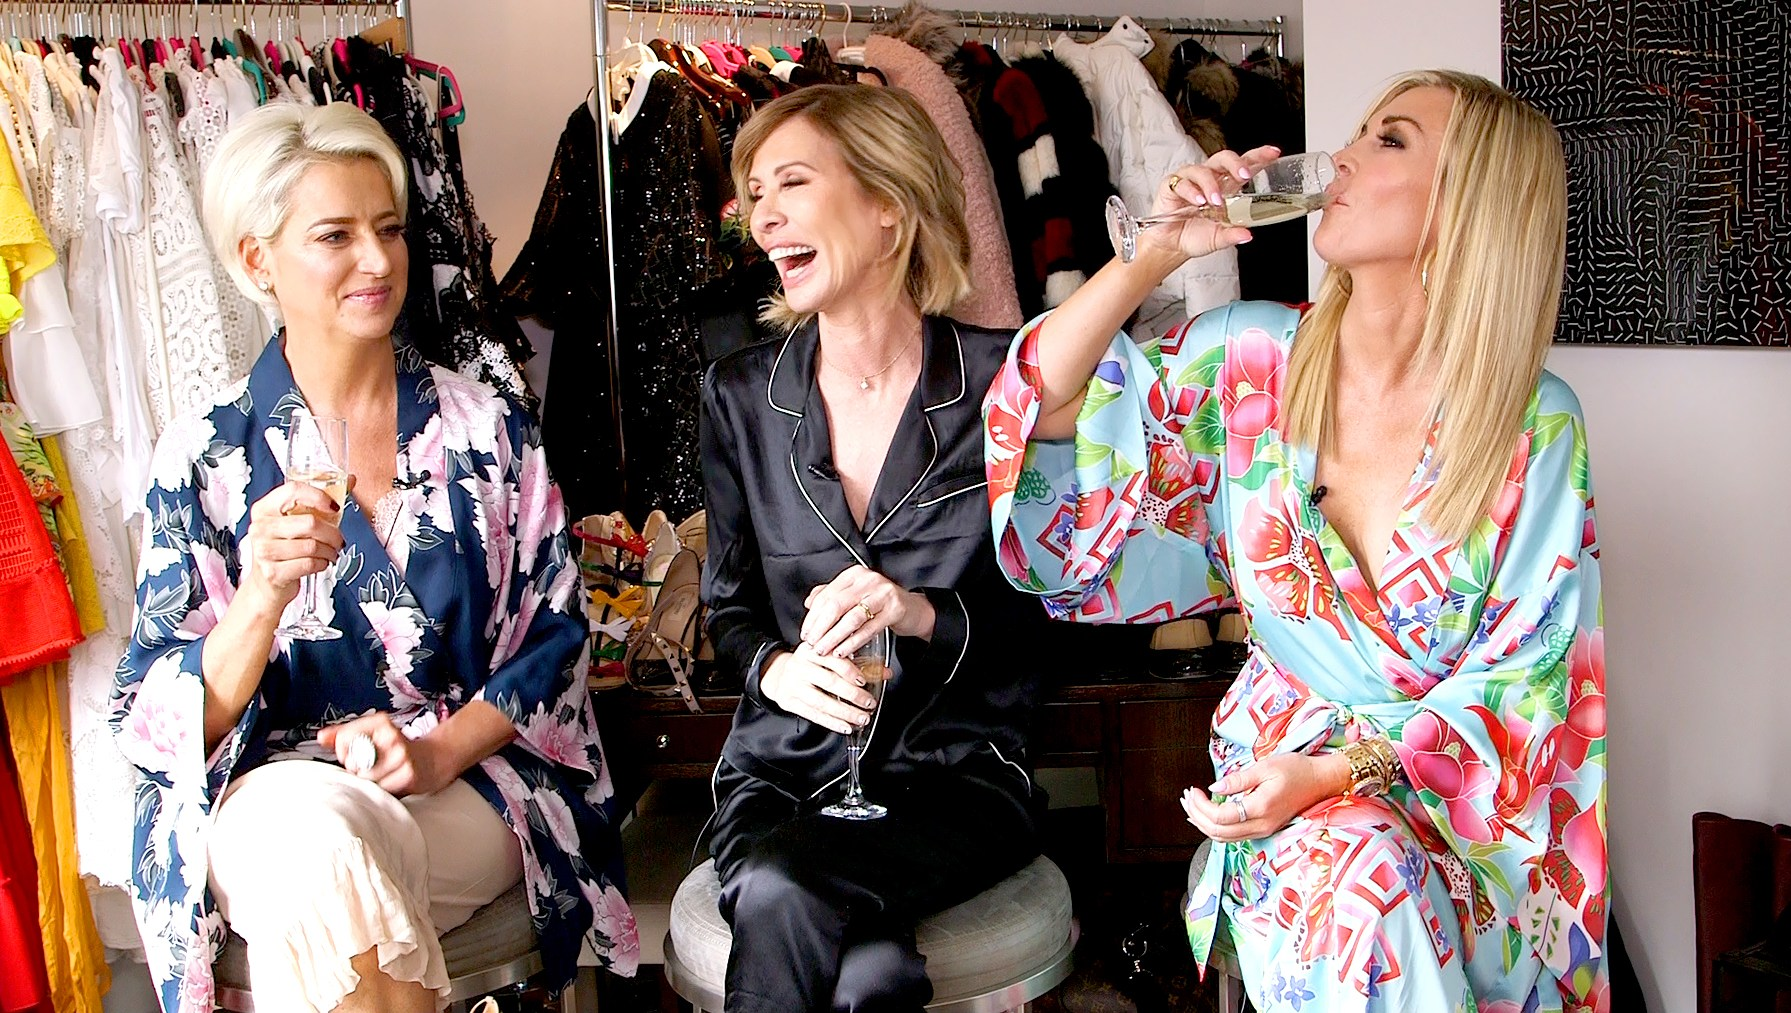 Dorinda Medley, Carole Radziwill, and Tinsley Mortimer